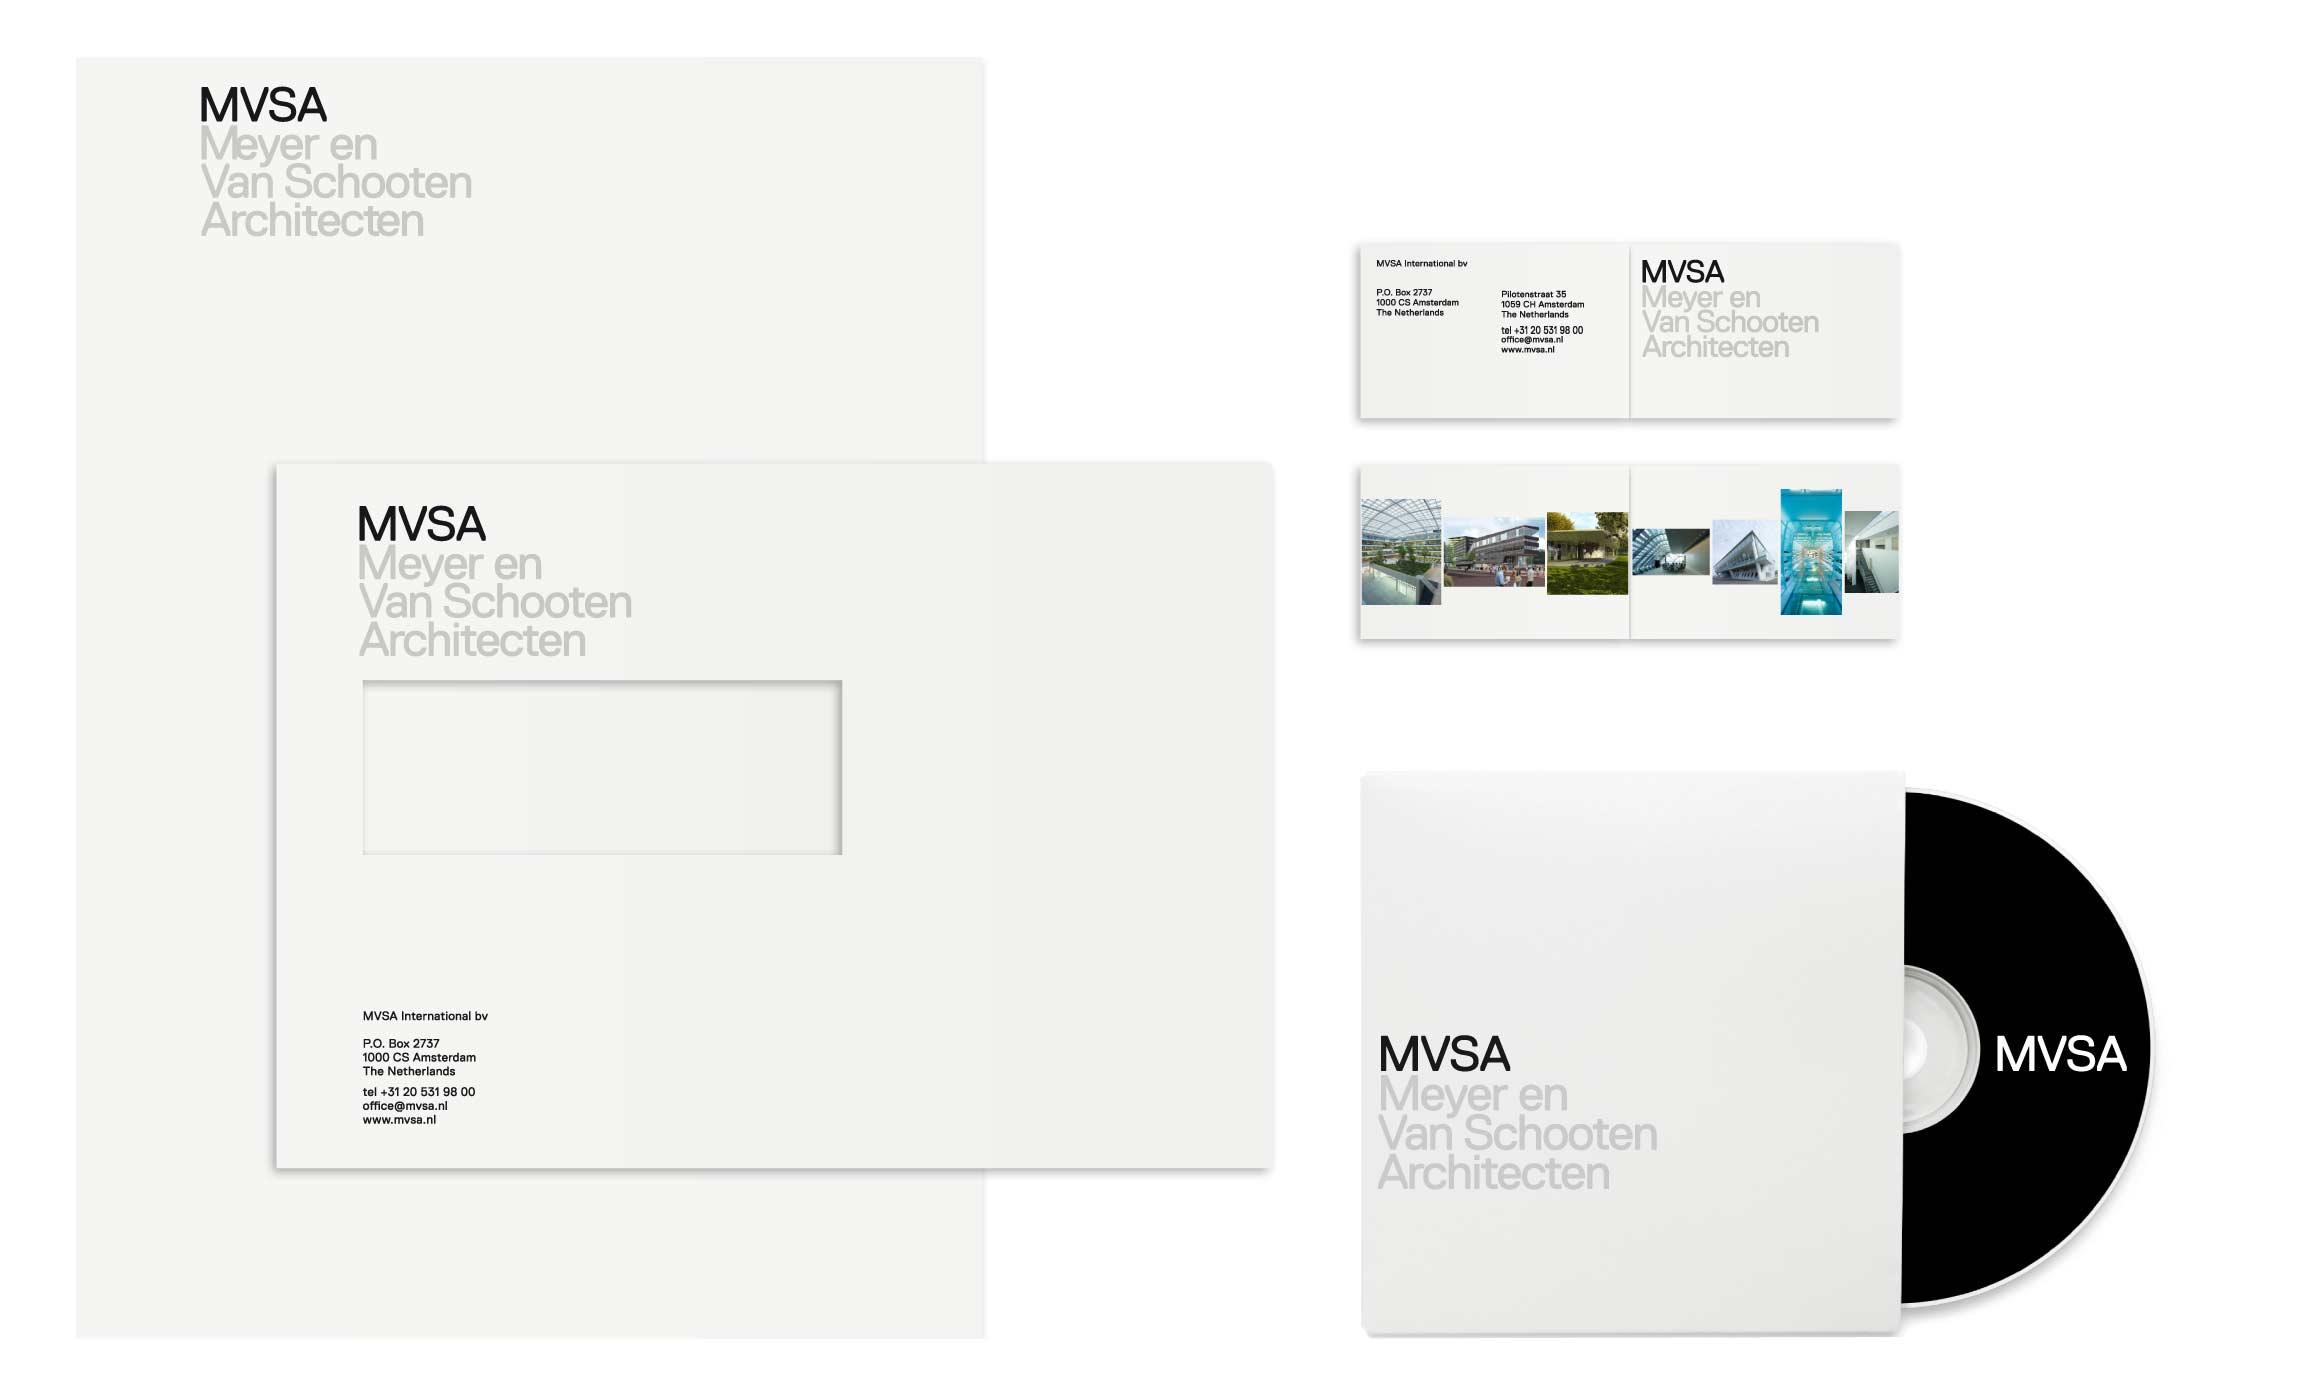 MVSA, architecture, webdesign, logo, branding, stationary